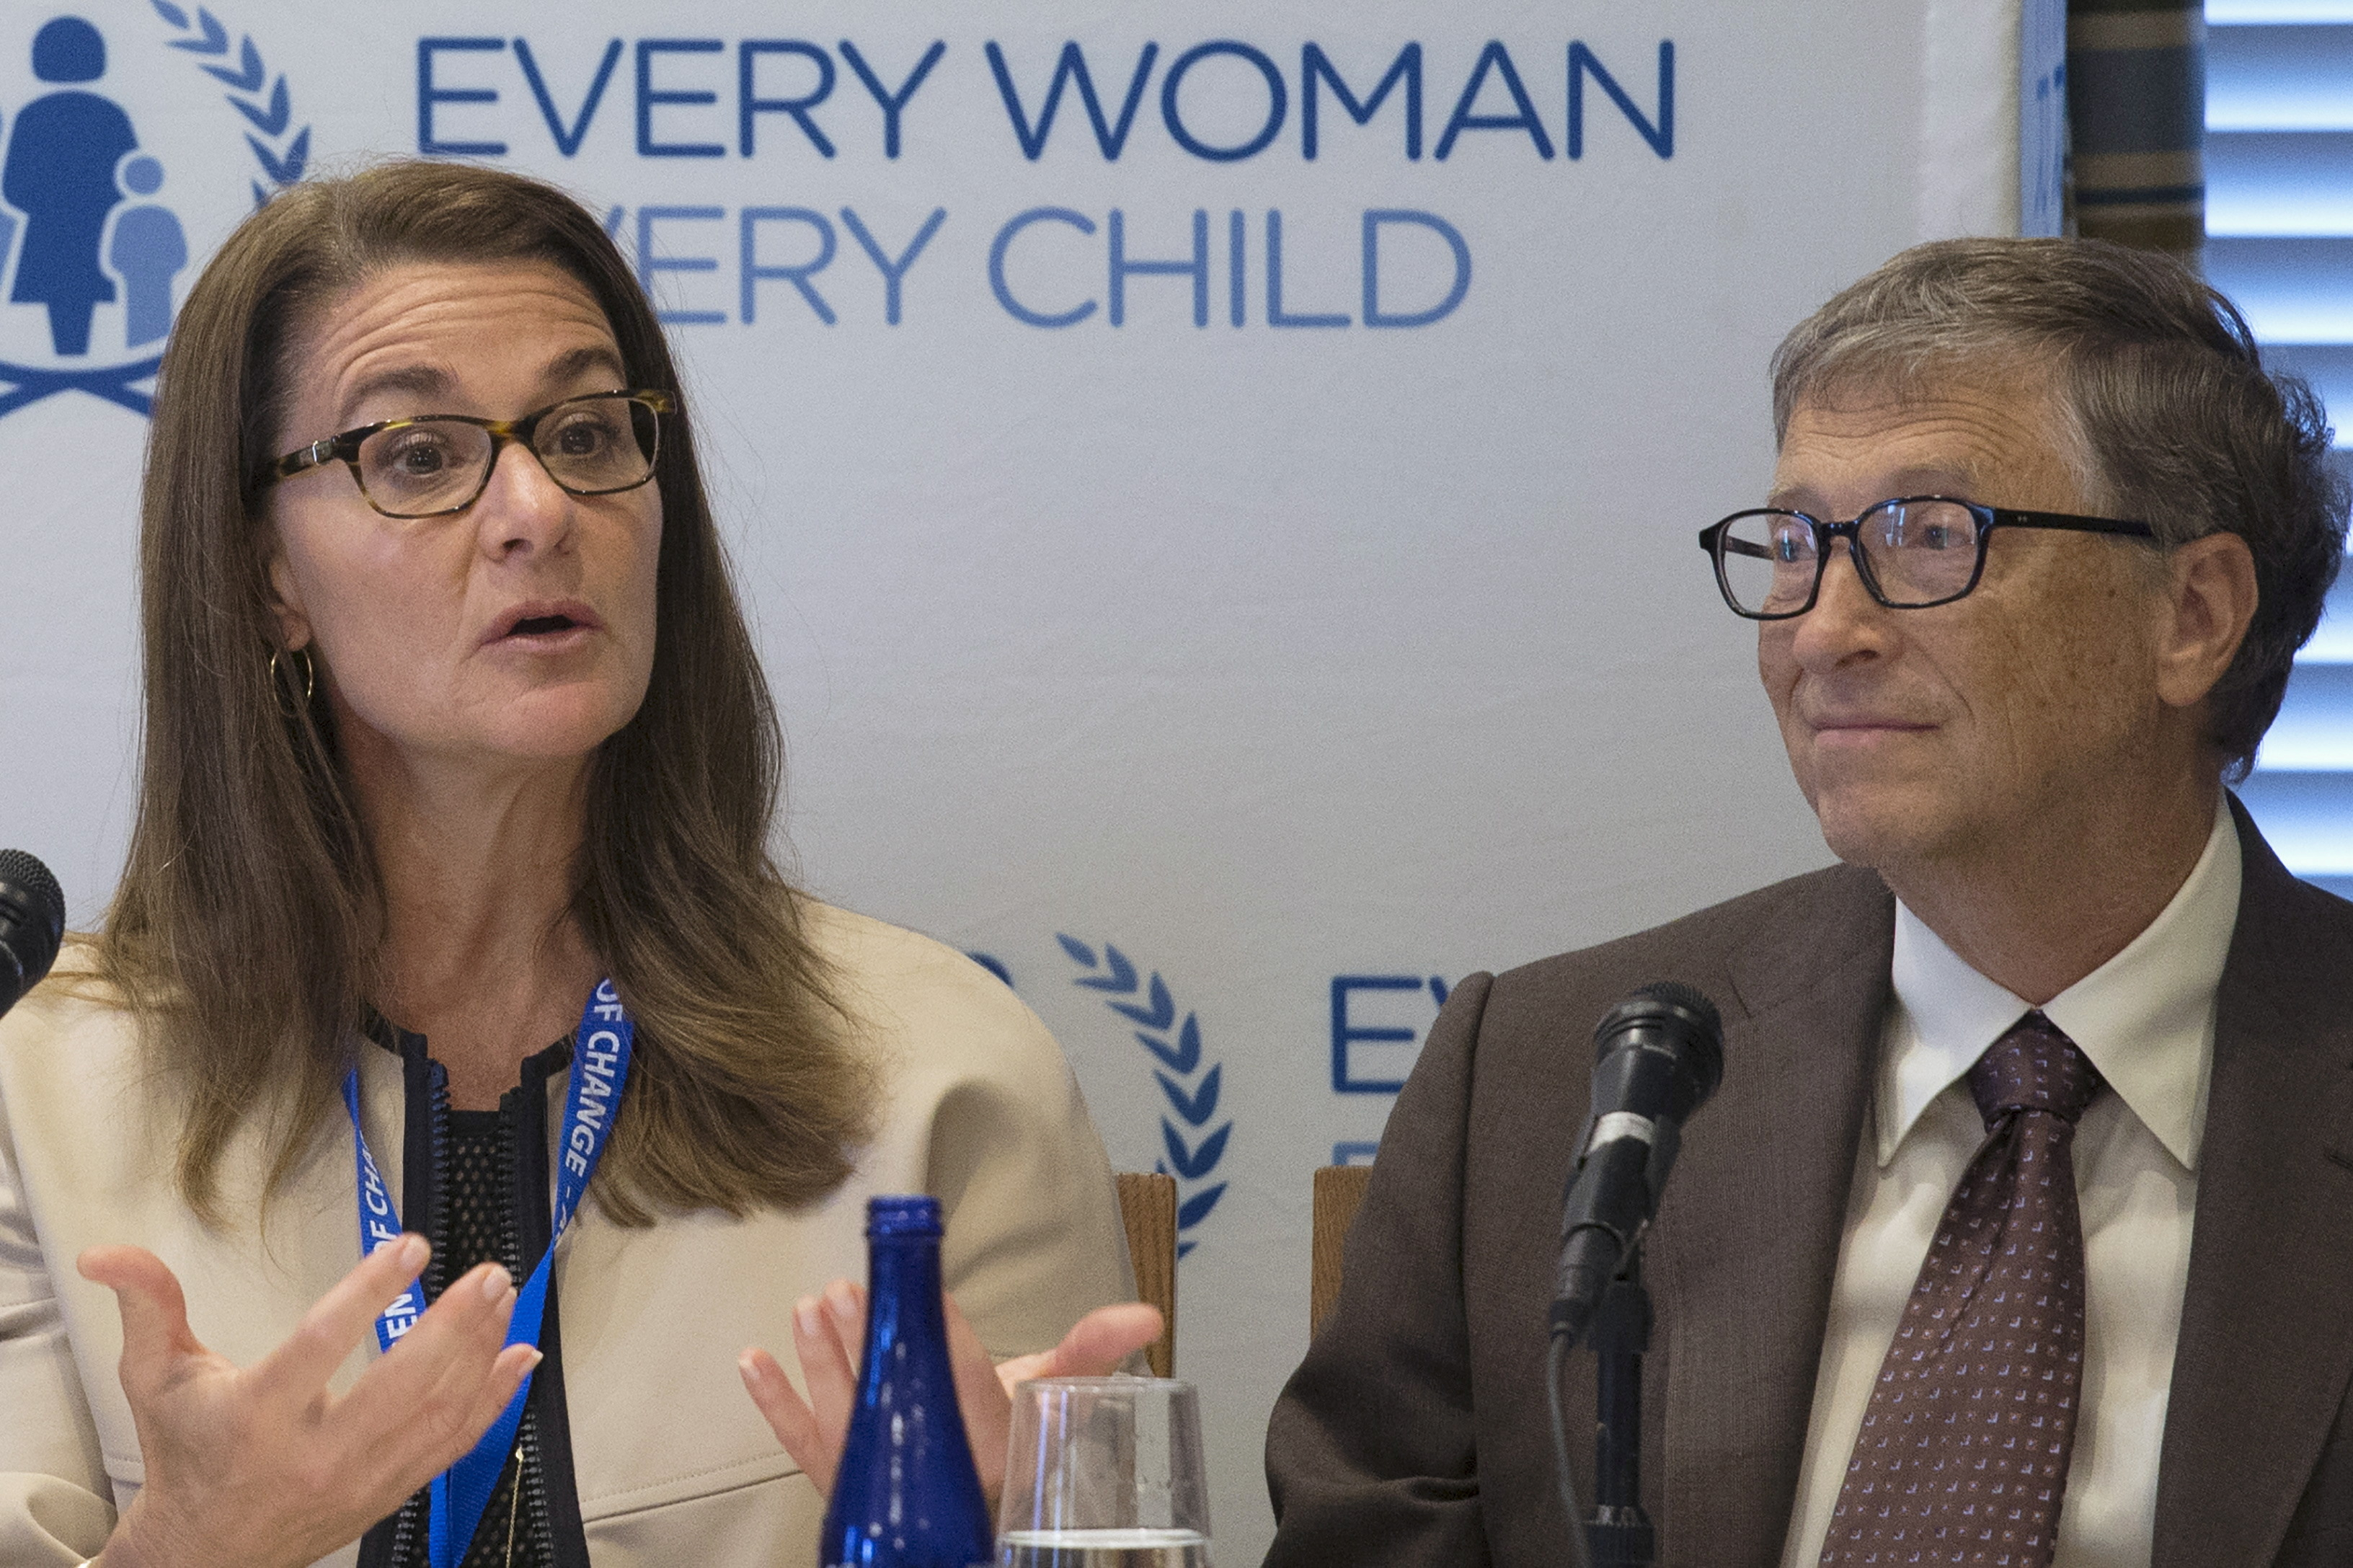 Melinda Gates and her husband, Microsoft co-founder Bill Gates, co-founders of Bill & Melinda Gates Foundation, attend a United Nations' Every Woman, Every Child news conference in New York September 24, 2015. REUTERS/Pearl Gabel